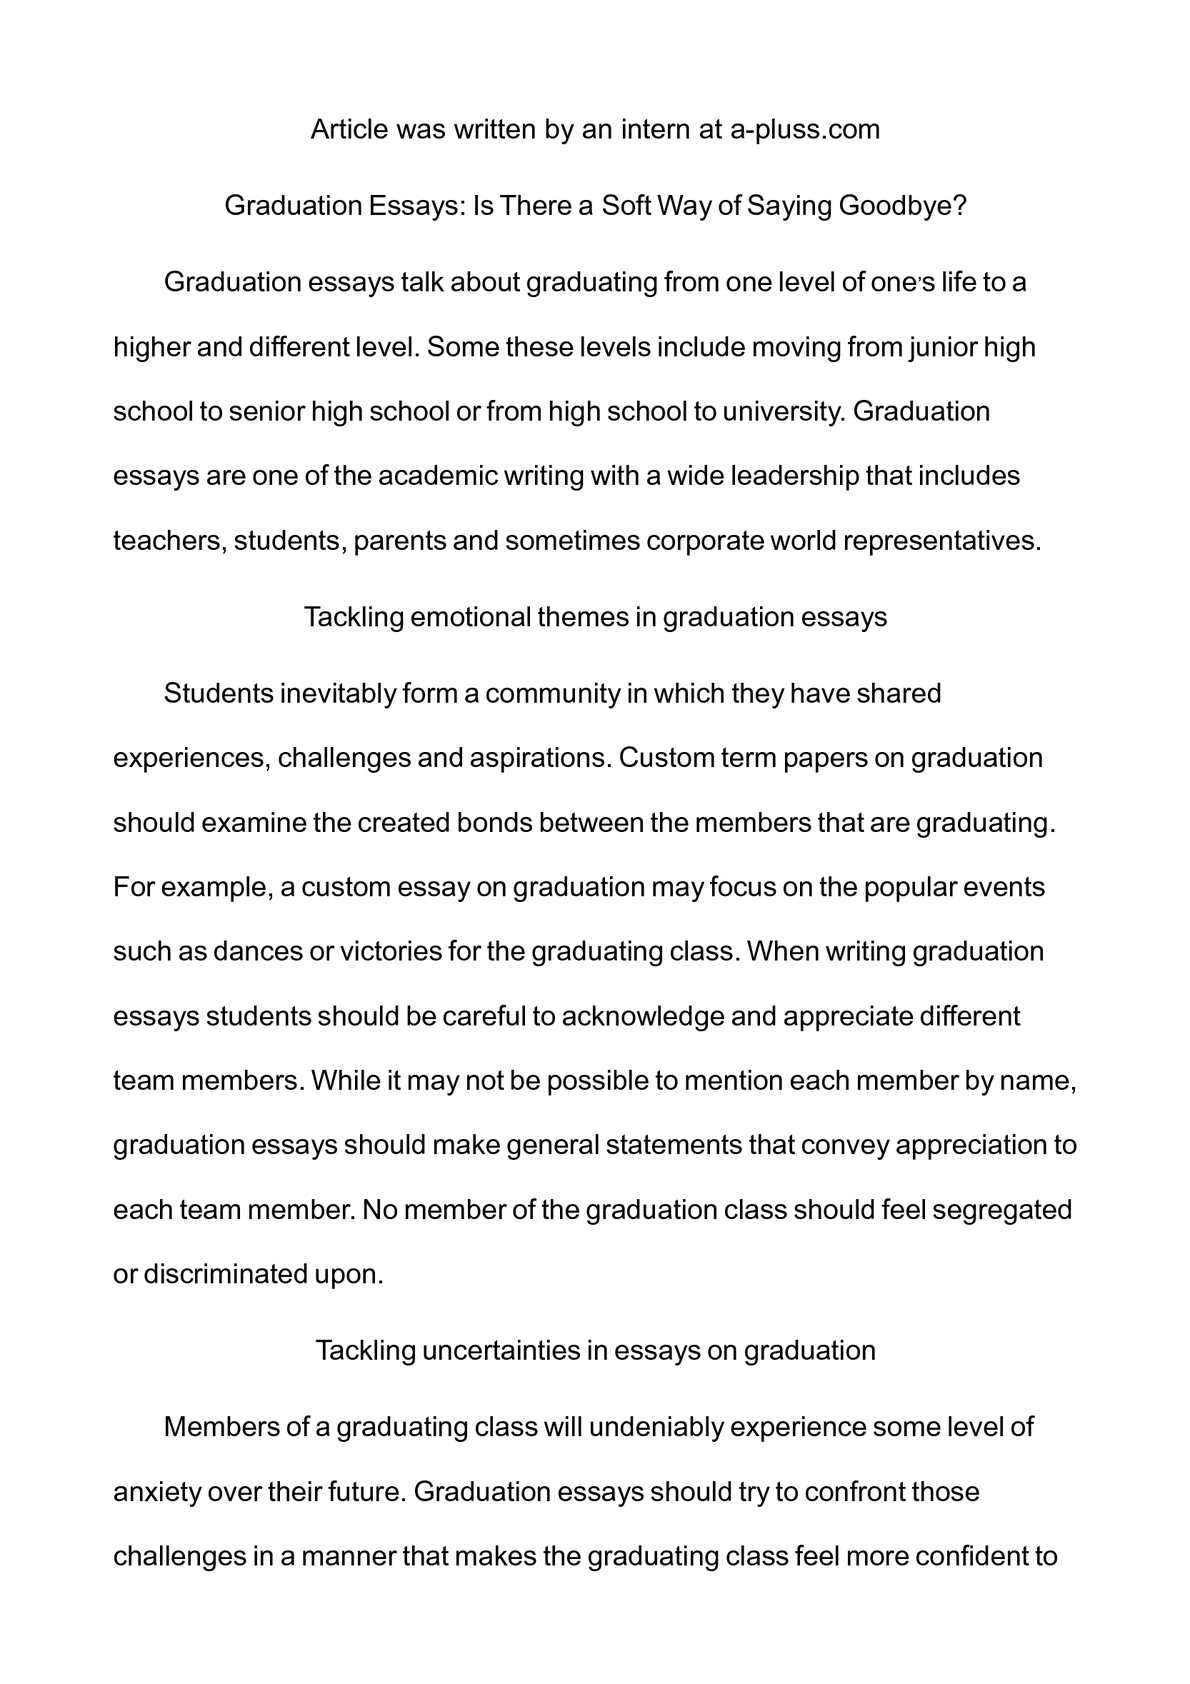 004 Essay Example P1 Formidable Truth Nothing But The Topics Alone Triumphs In Tamil Conclusion Full